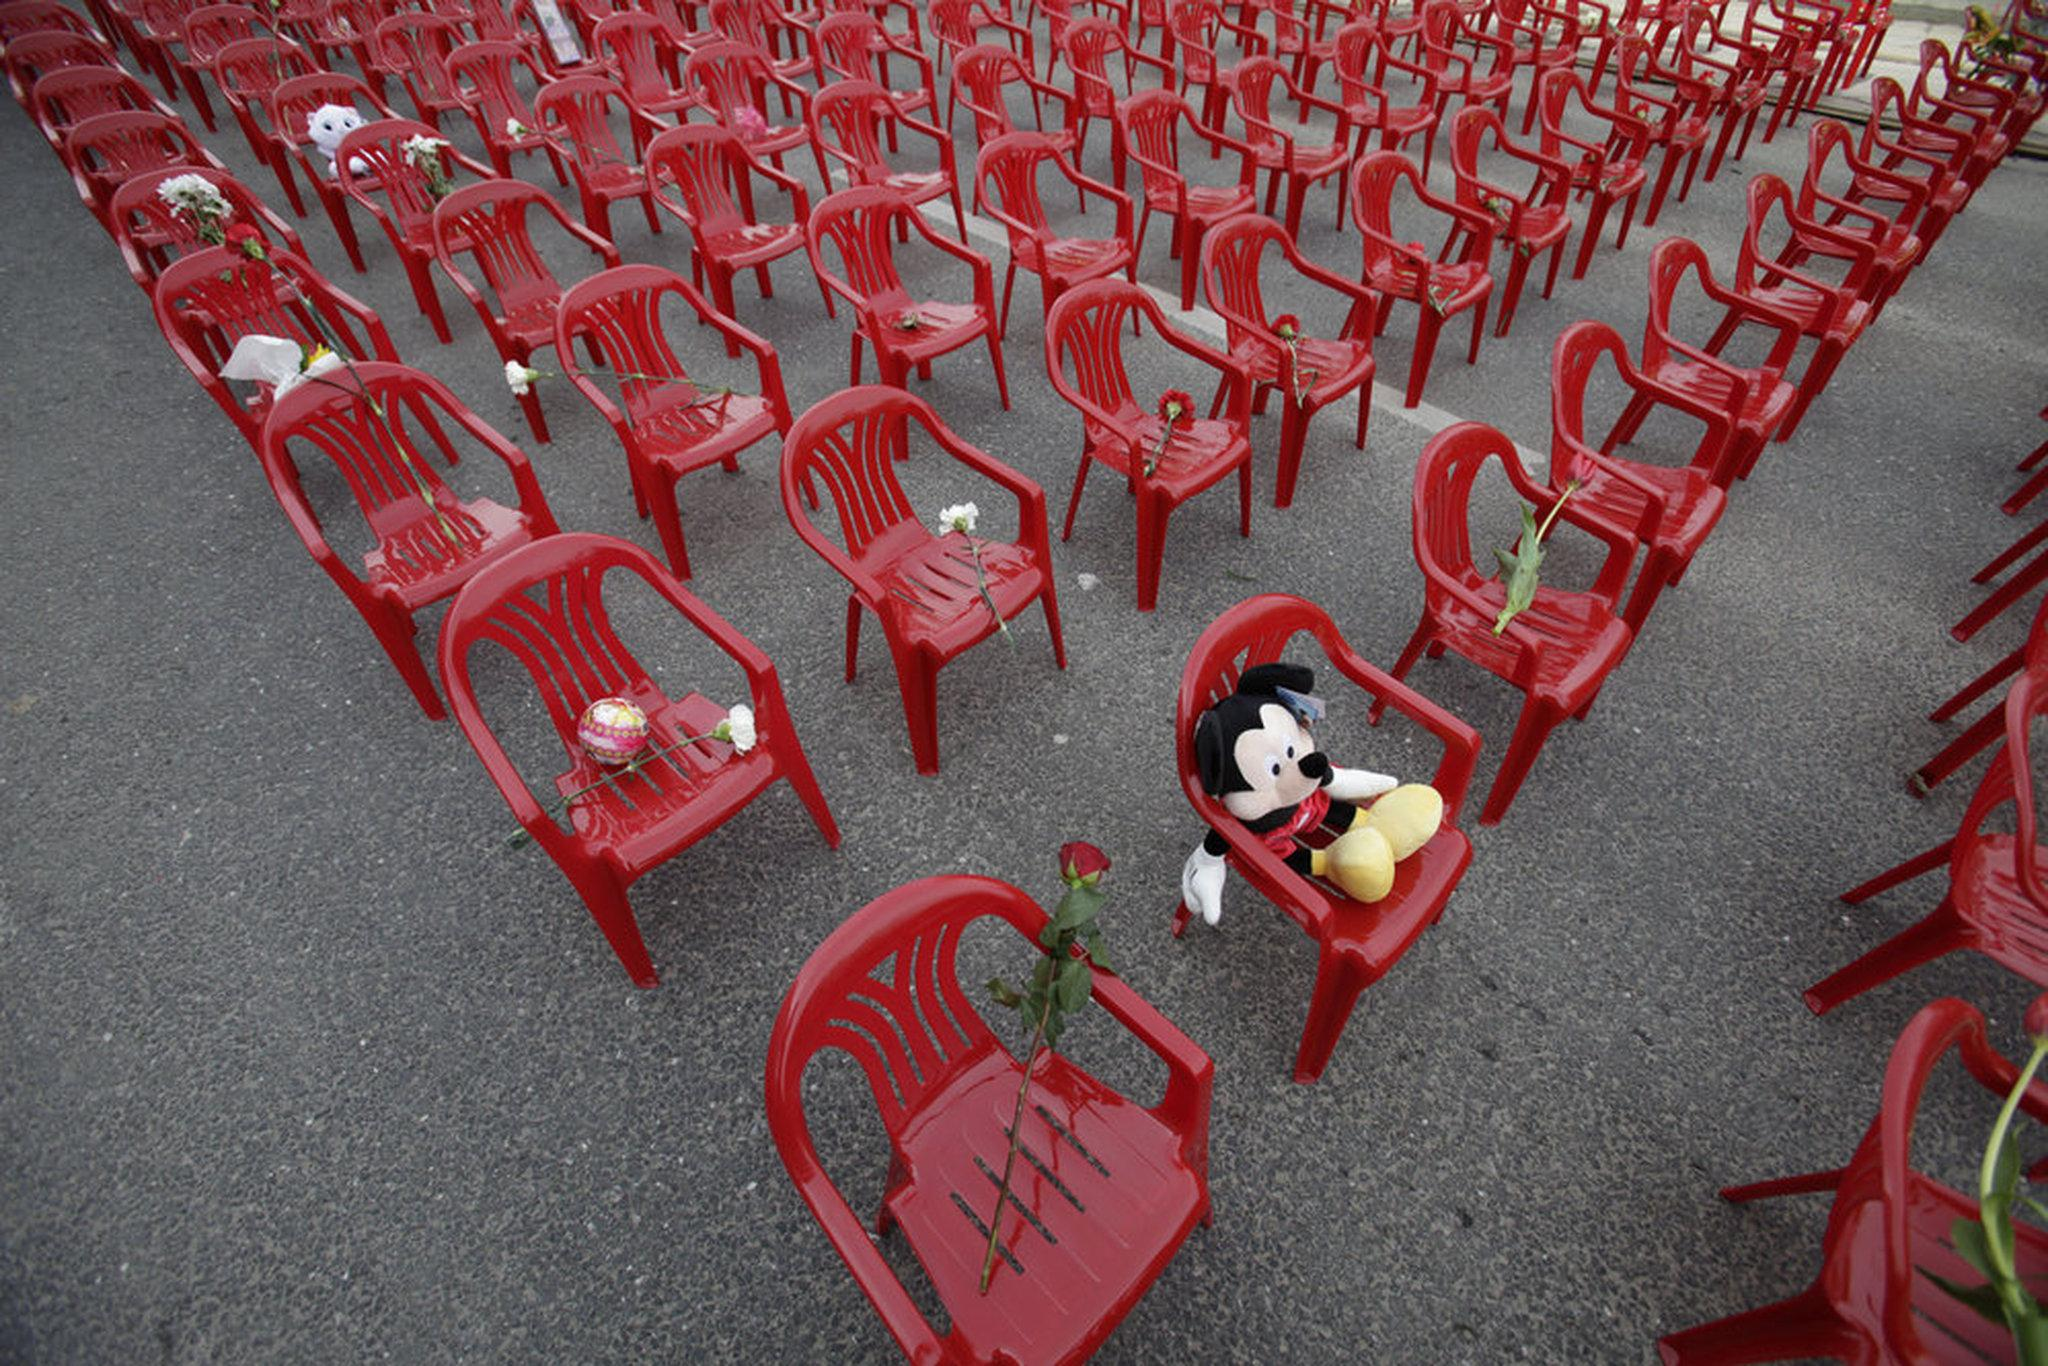 red chairs sarajevo hickory dining room peace justice elude rape victims of bosnian war new